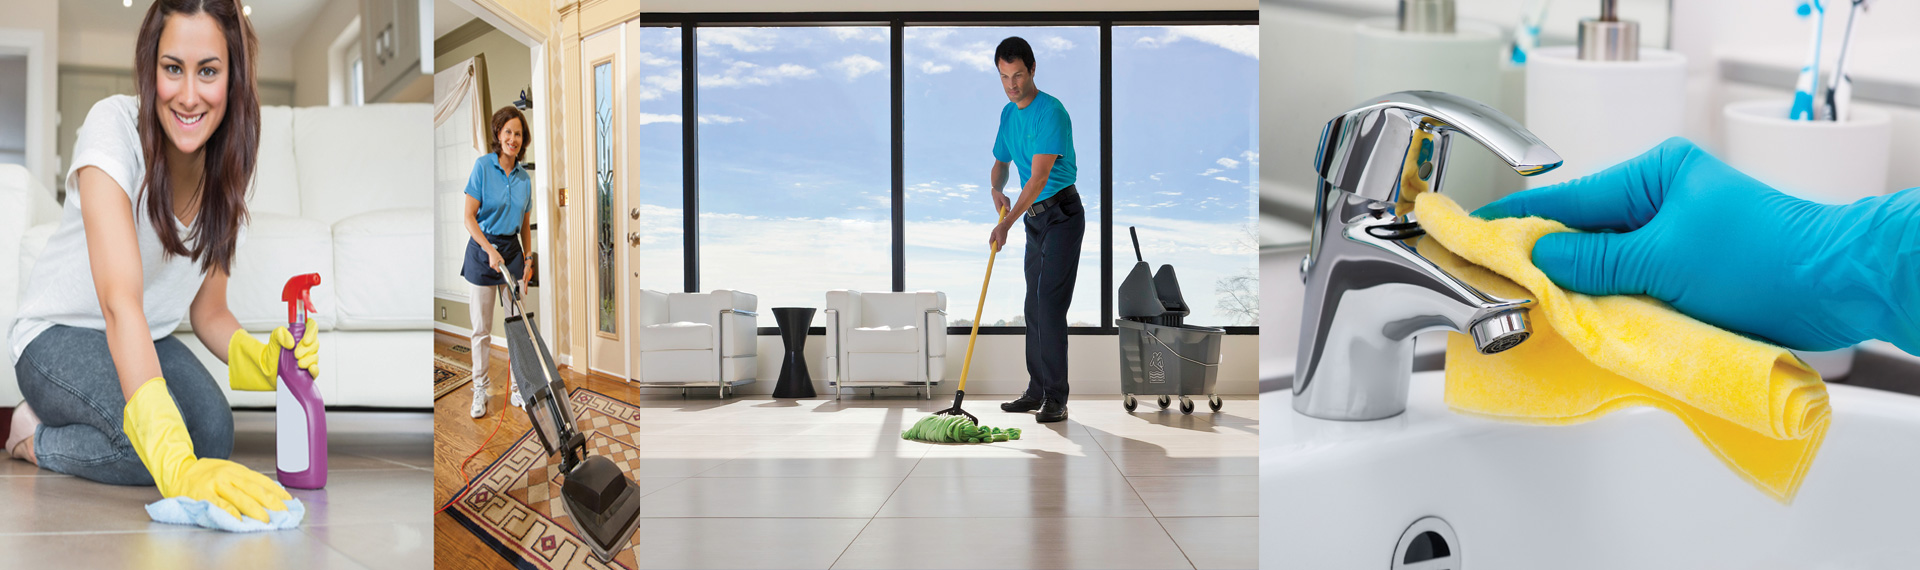 GPS Cleaning Service Nottingham MD